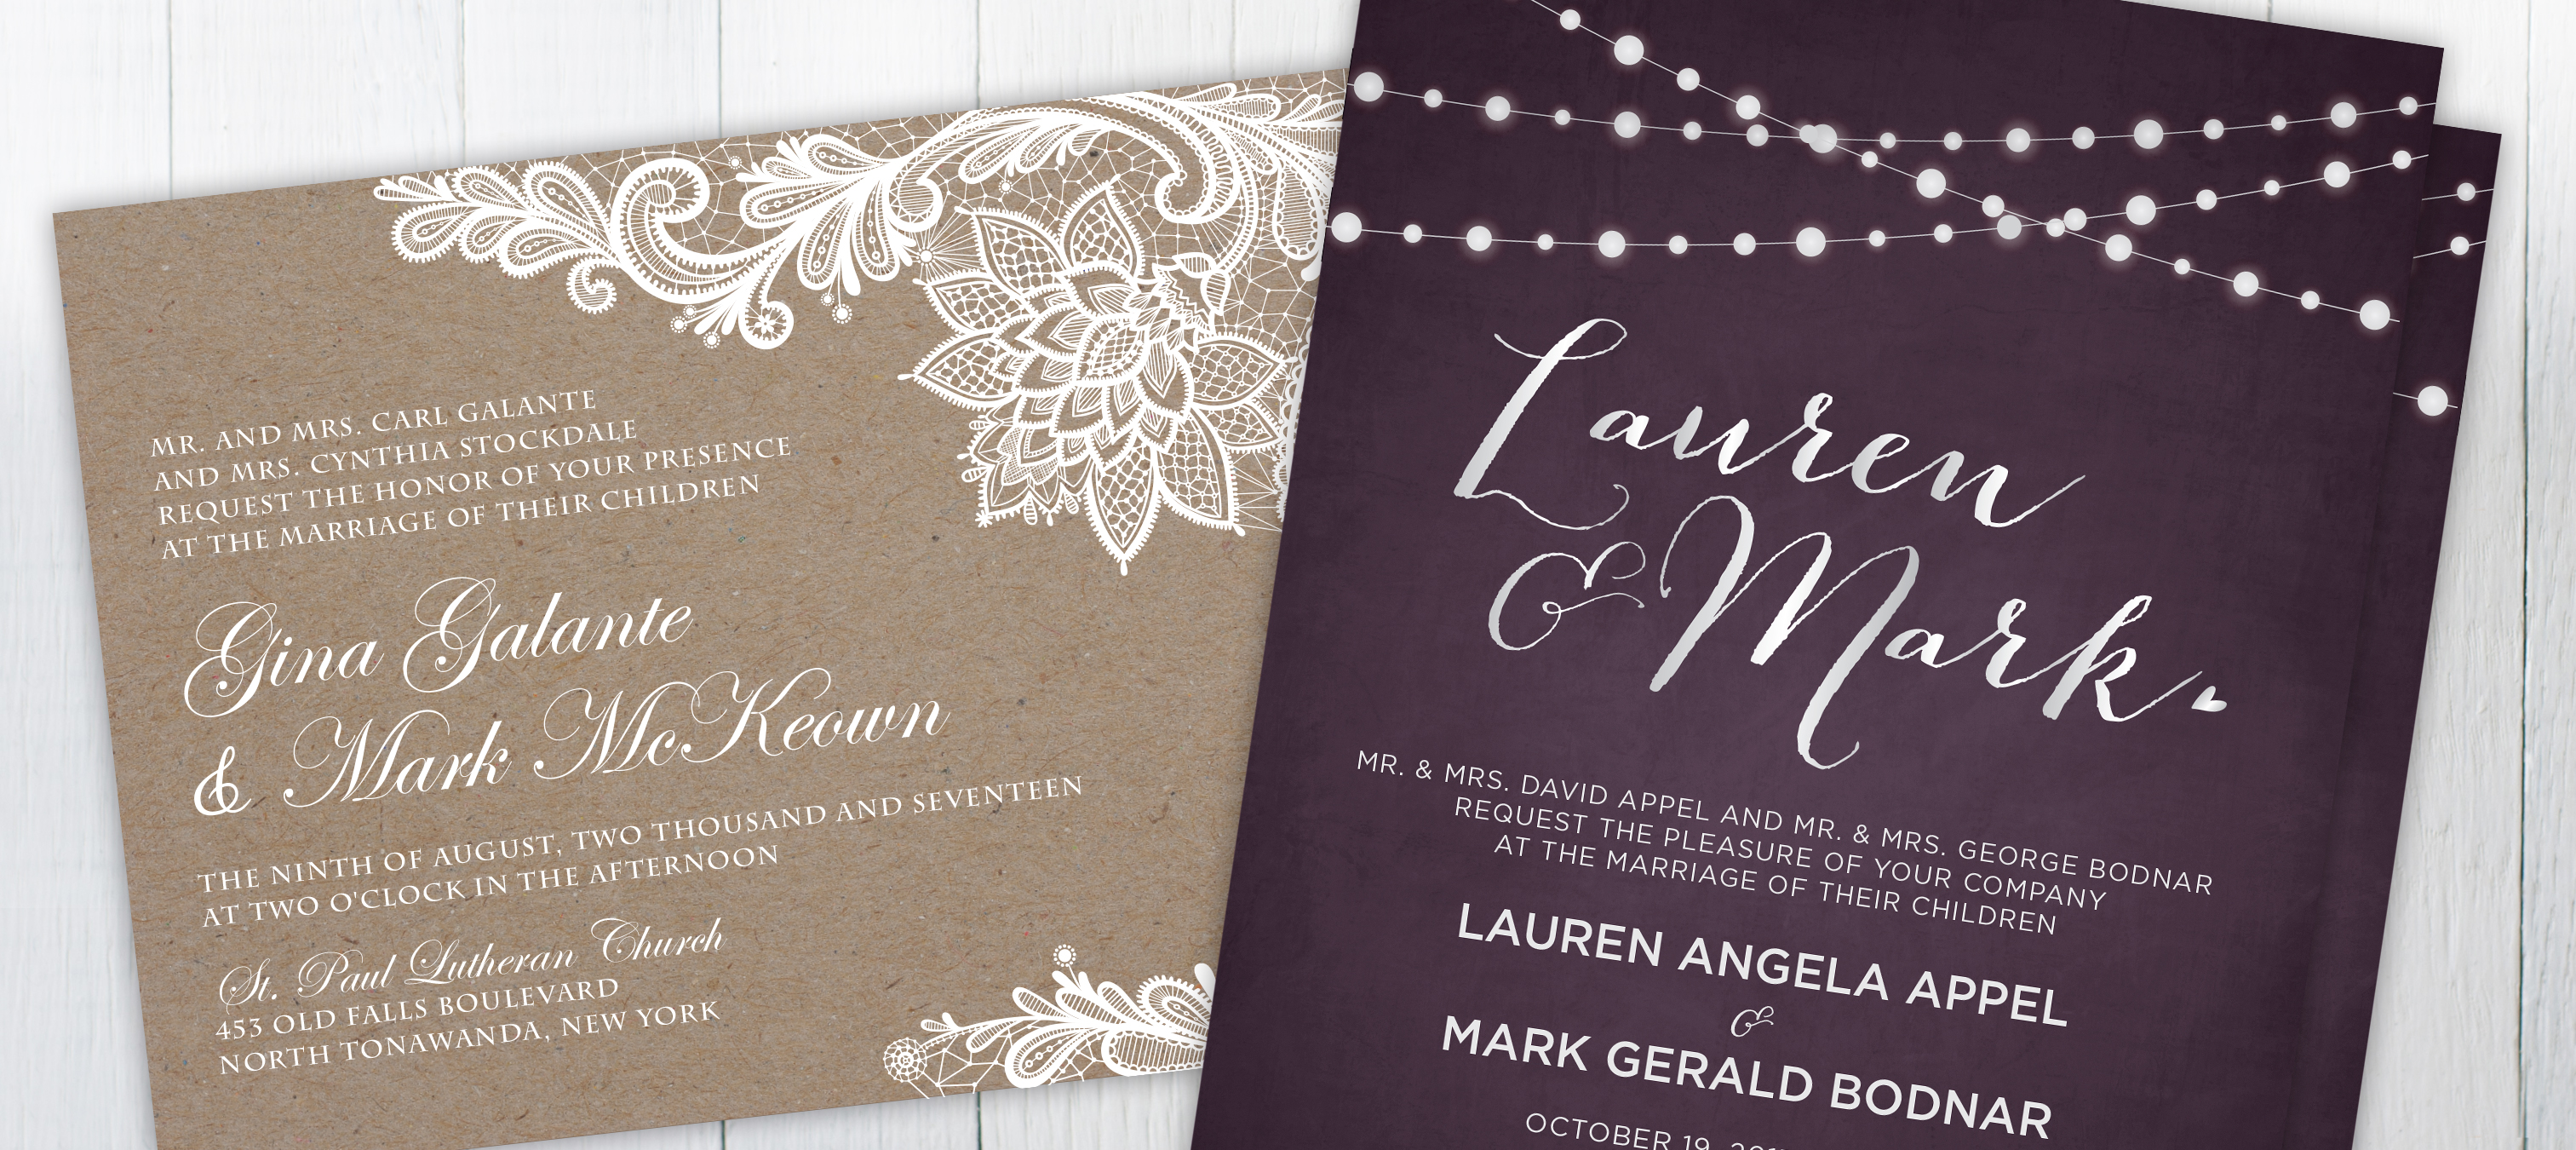 Wording For Invitations Wedding: Wedding Invitation Wording • Taylor Bradford